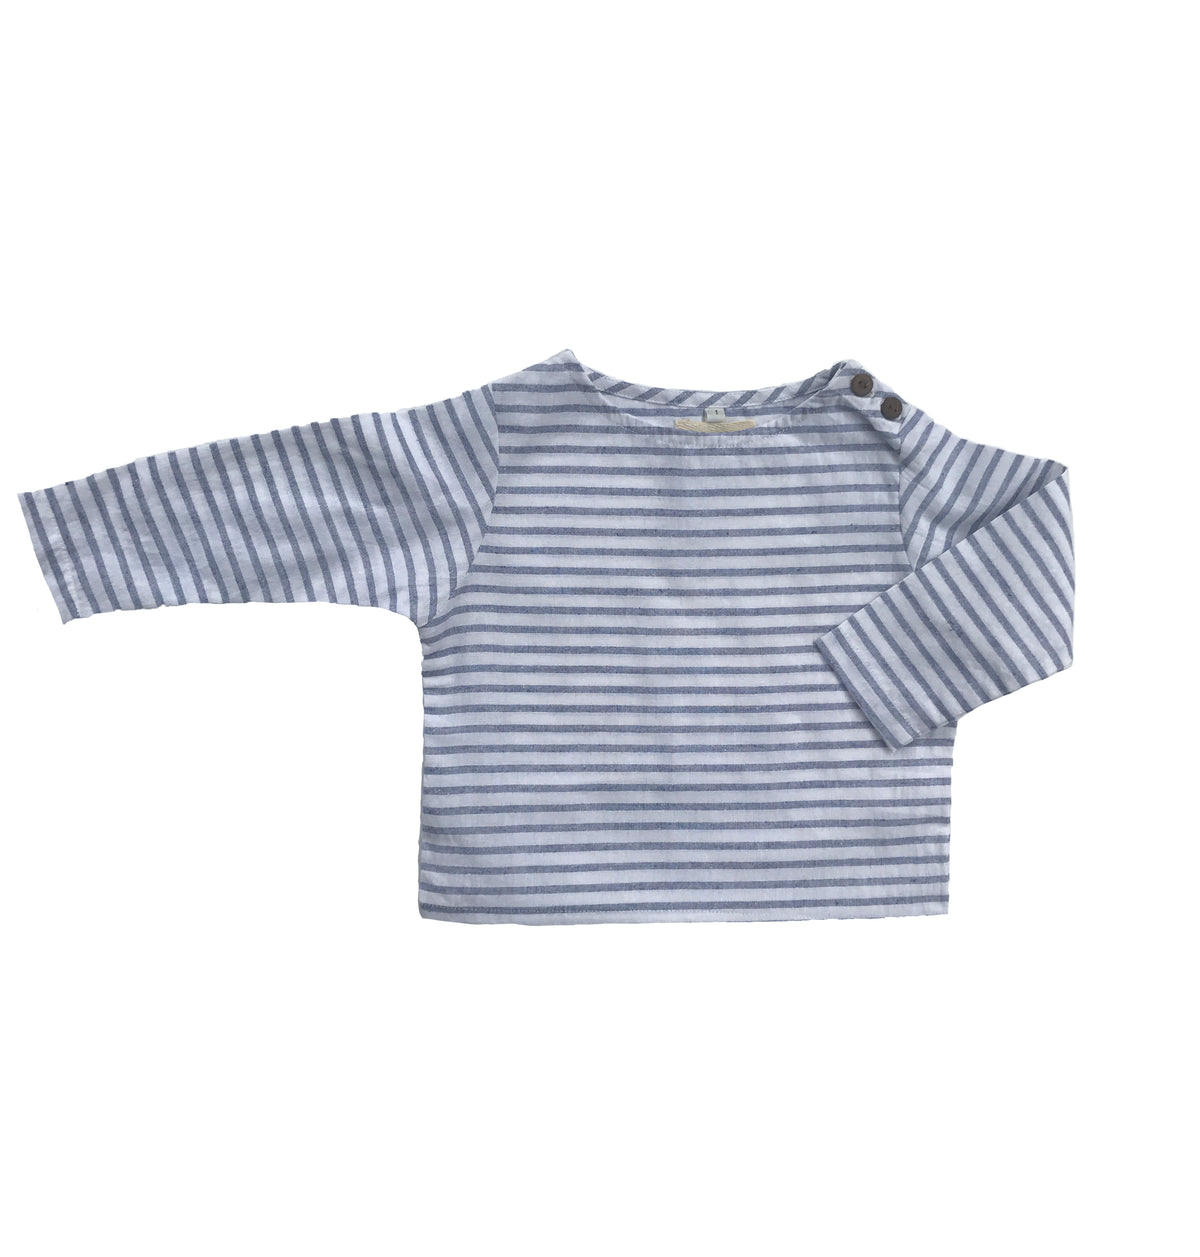 KÚKÚ TOP BLUE/WHITE STRIPE